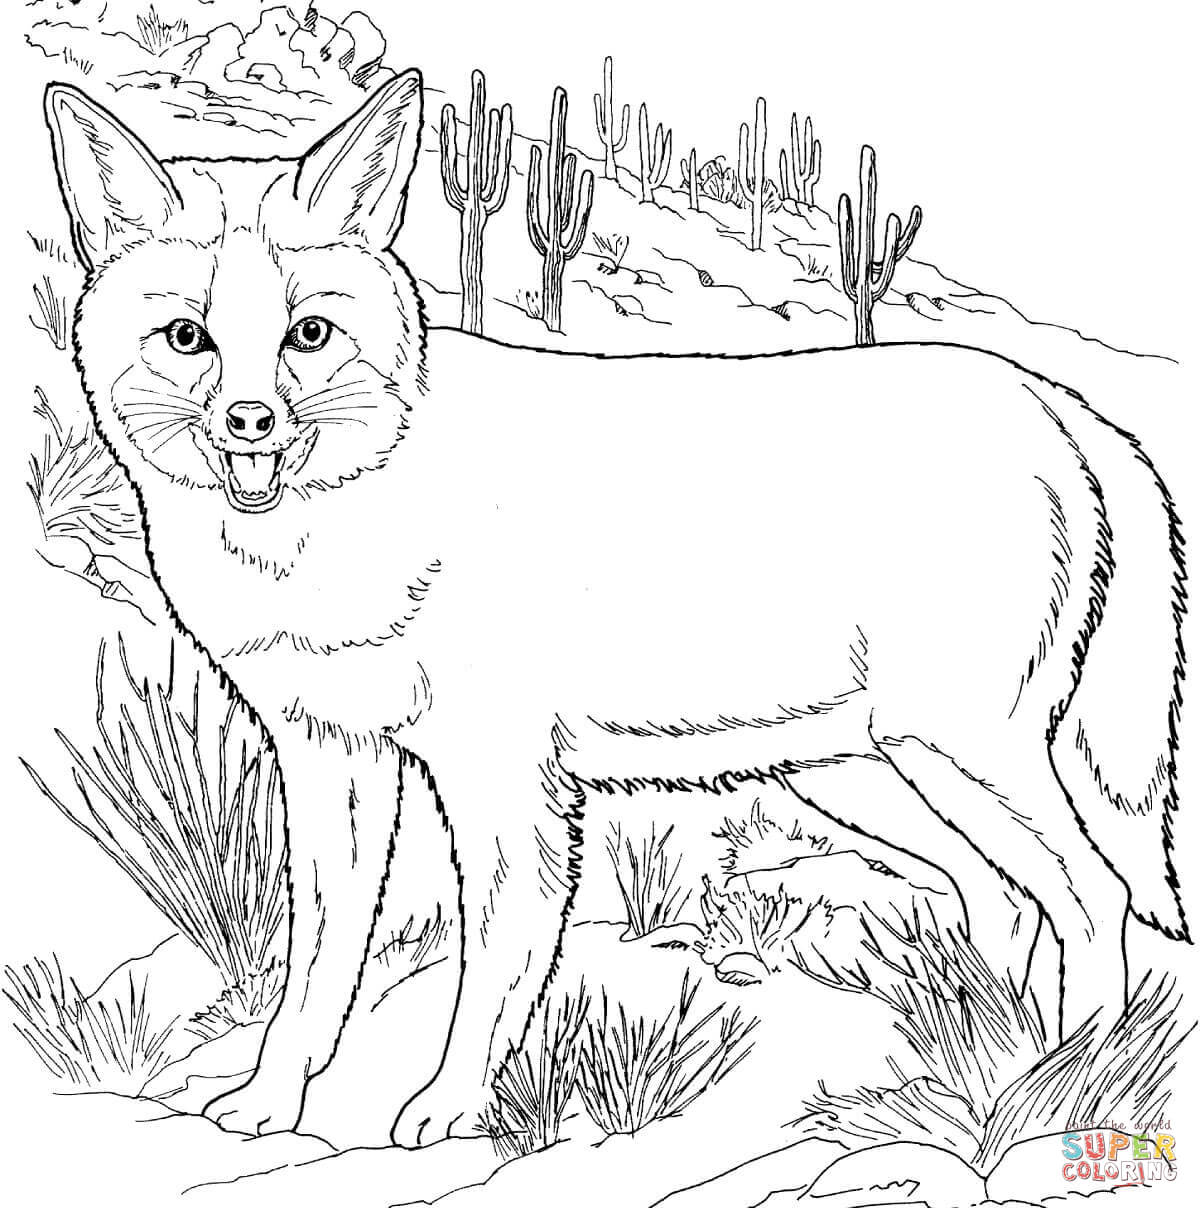 Foxes Drawing at GetDrawings.com | Free for personal use Foxes ...